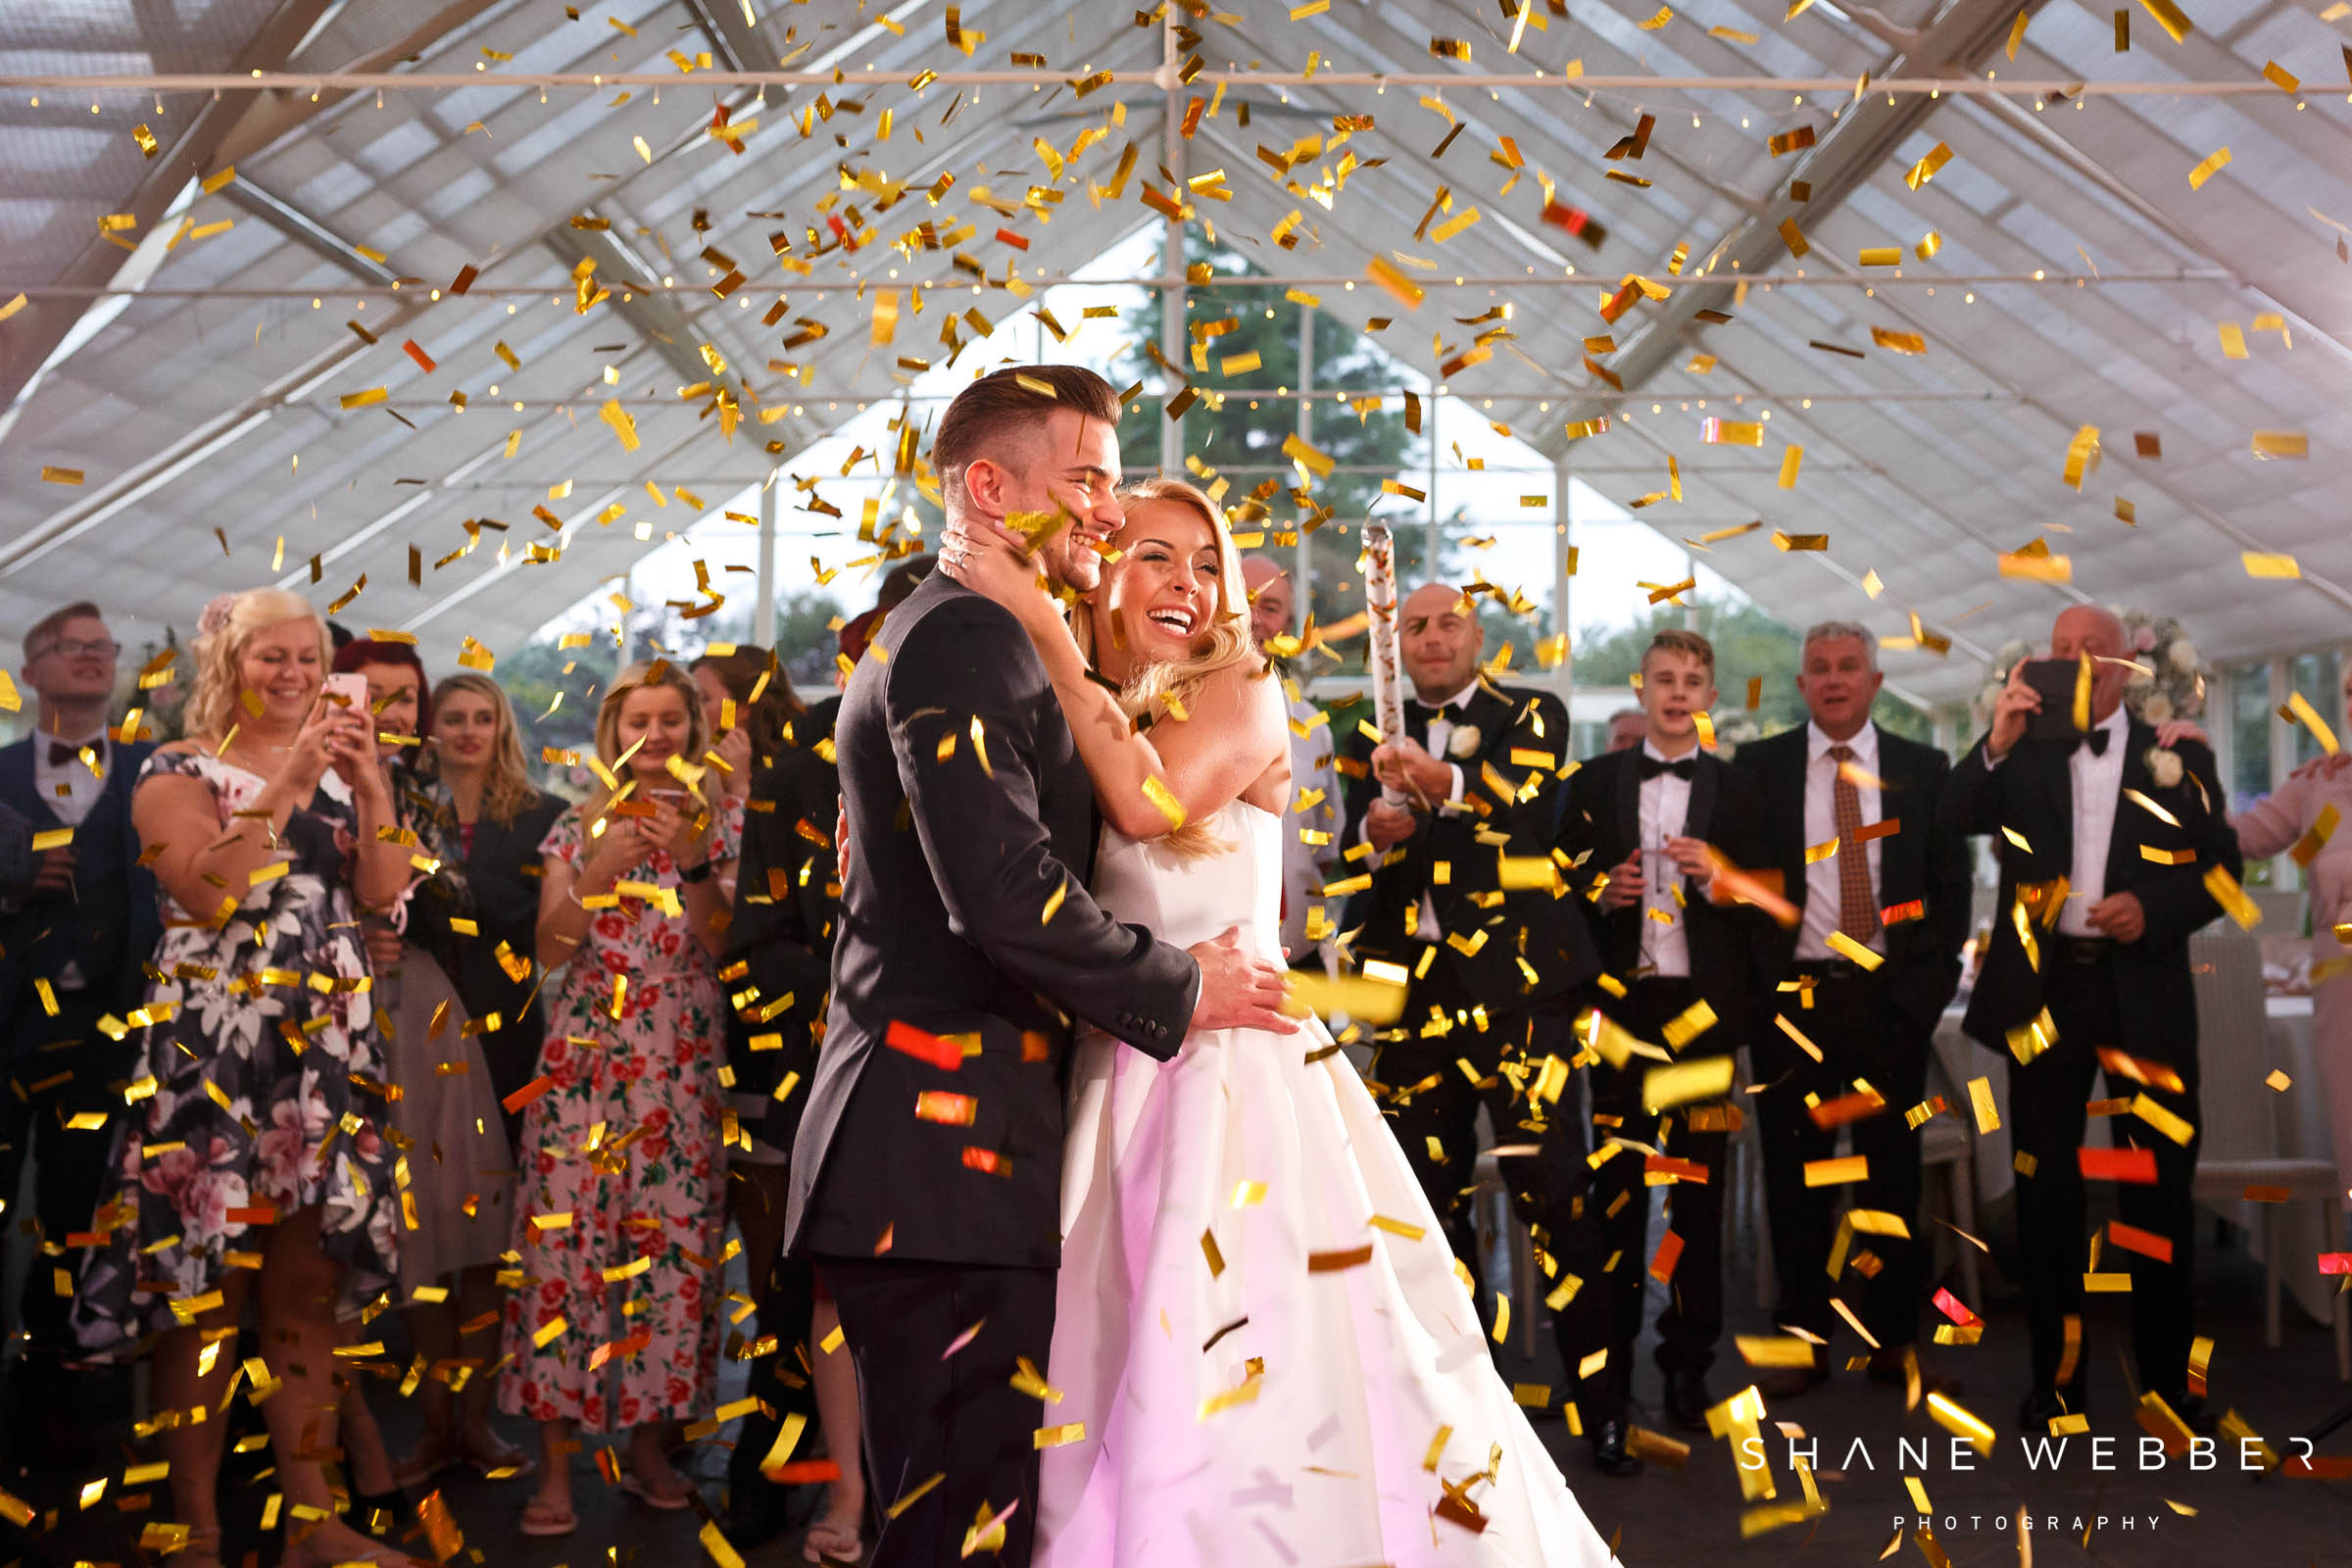 gold confetti cannon during first dance